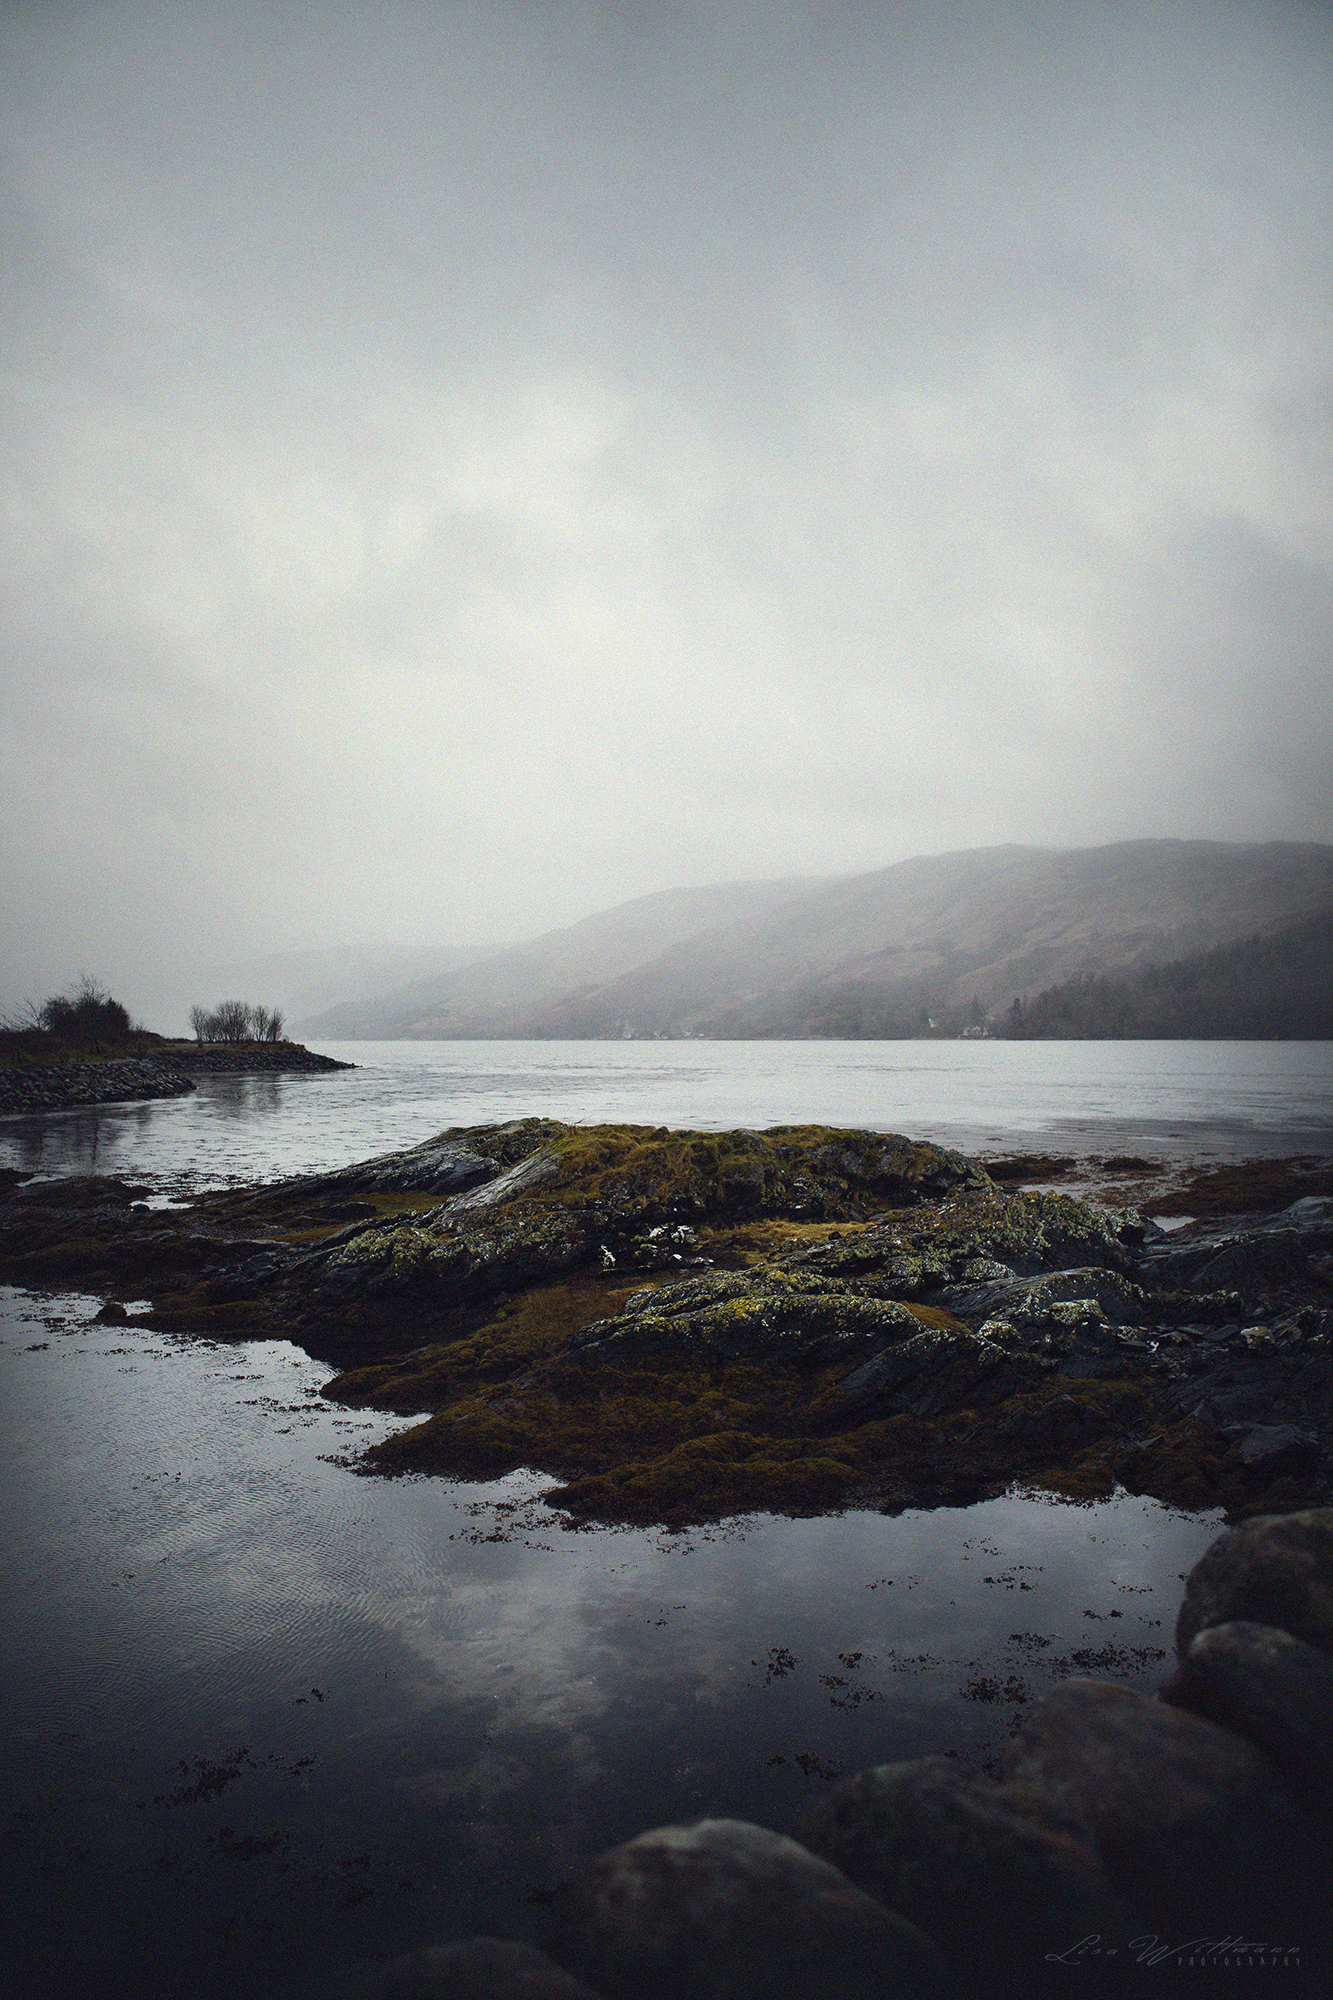 scotland_highlands_lisa_wittmann_photography_mountains_fog_water_beautiful_moody_canon_travel_paradise_fairytale_waterfall_cold_film_lake_moody